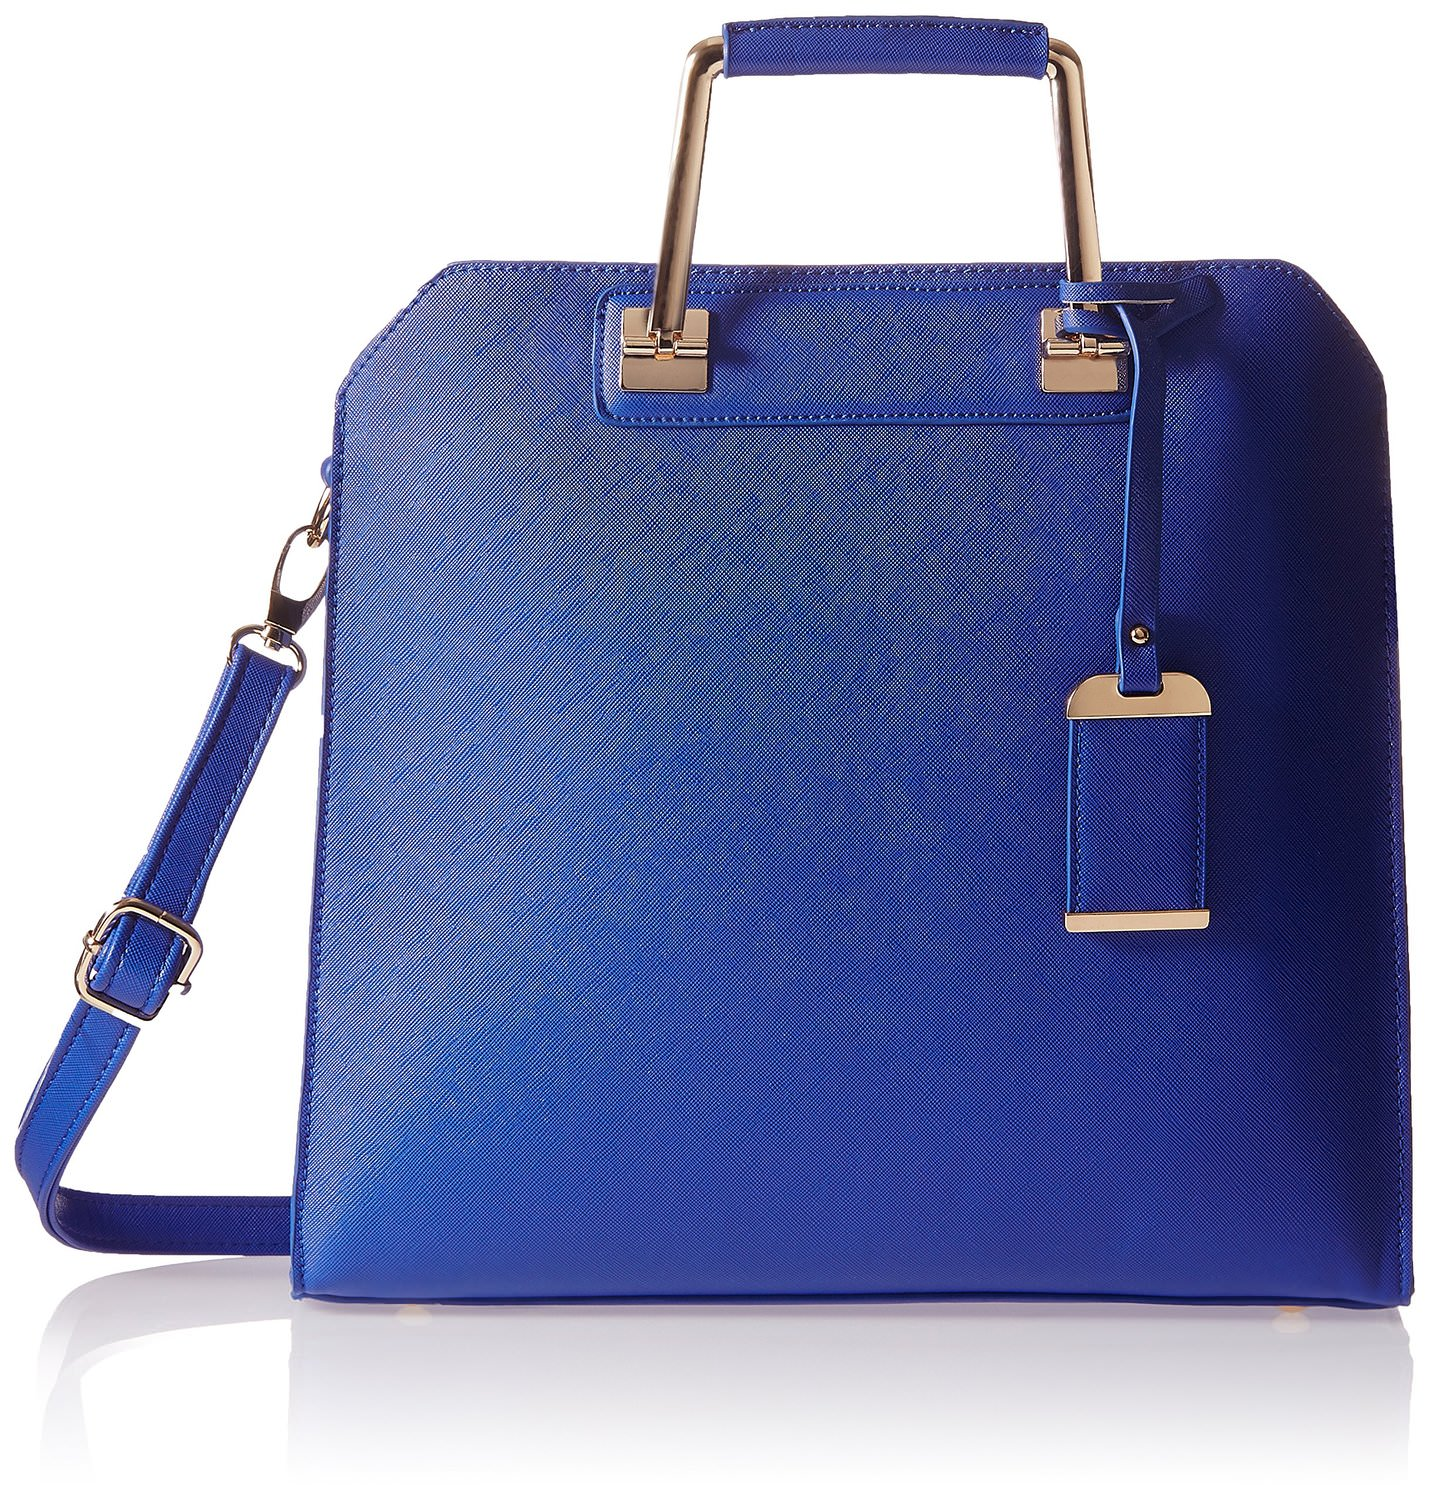 KNY Women Blue Handbag